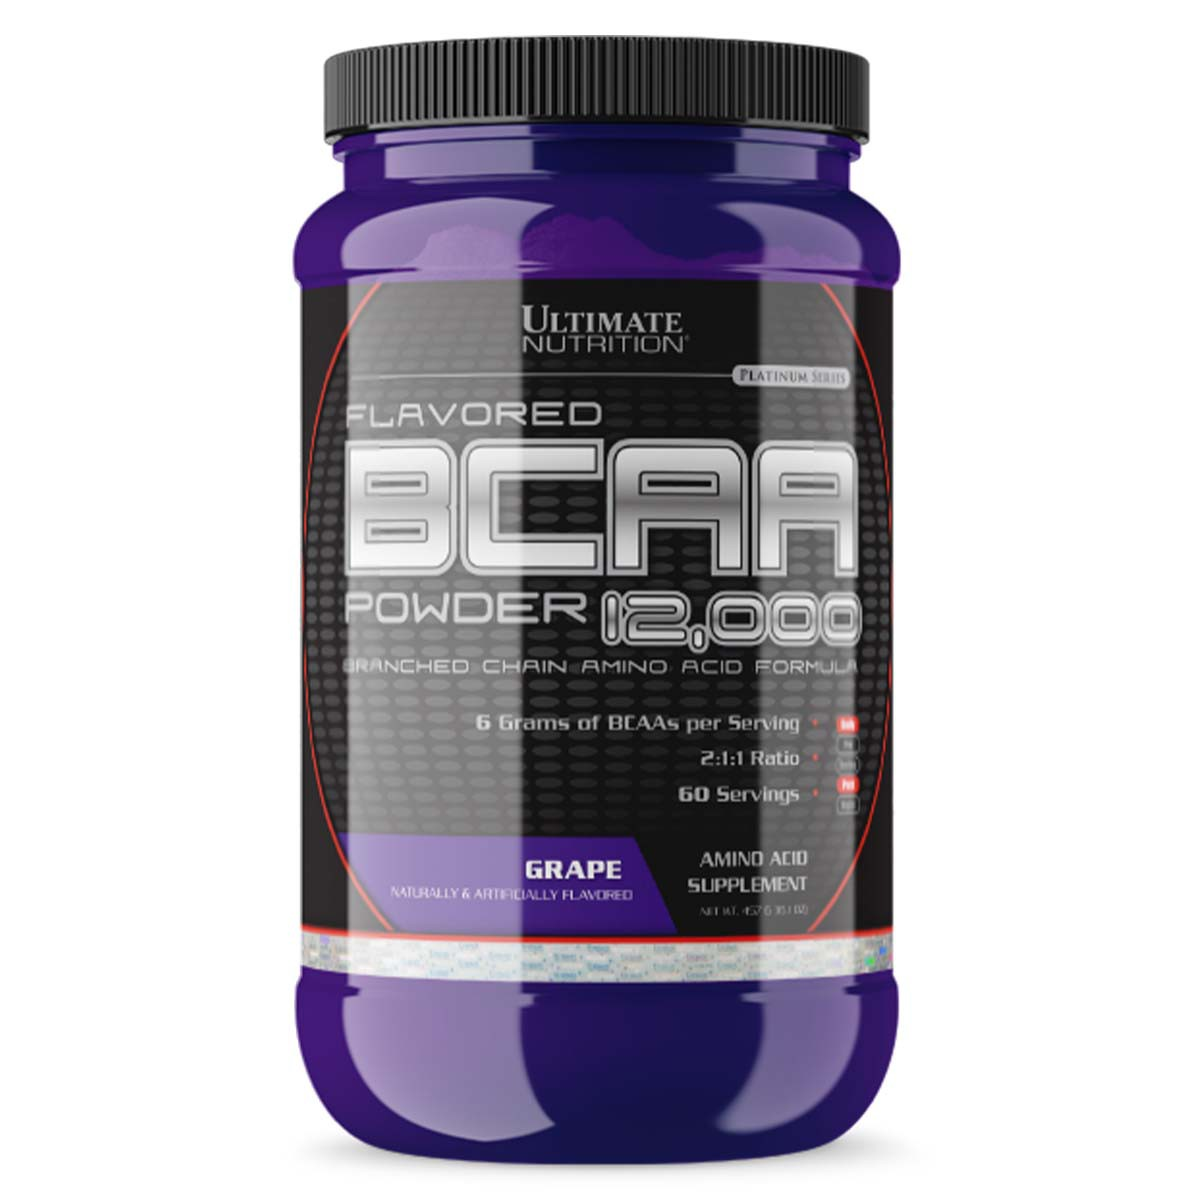 Flavored BCAA 12000 460g - Ultimate Nutrition